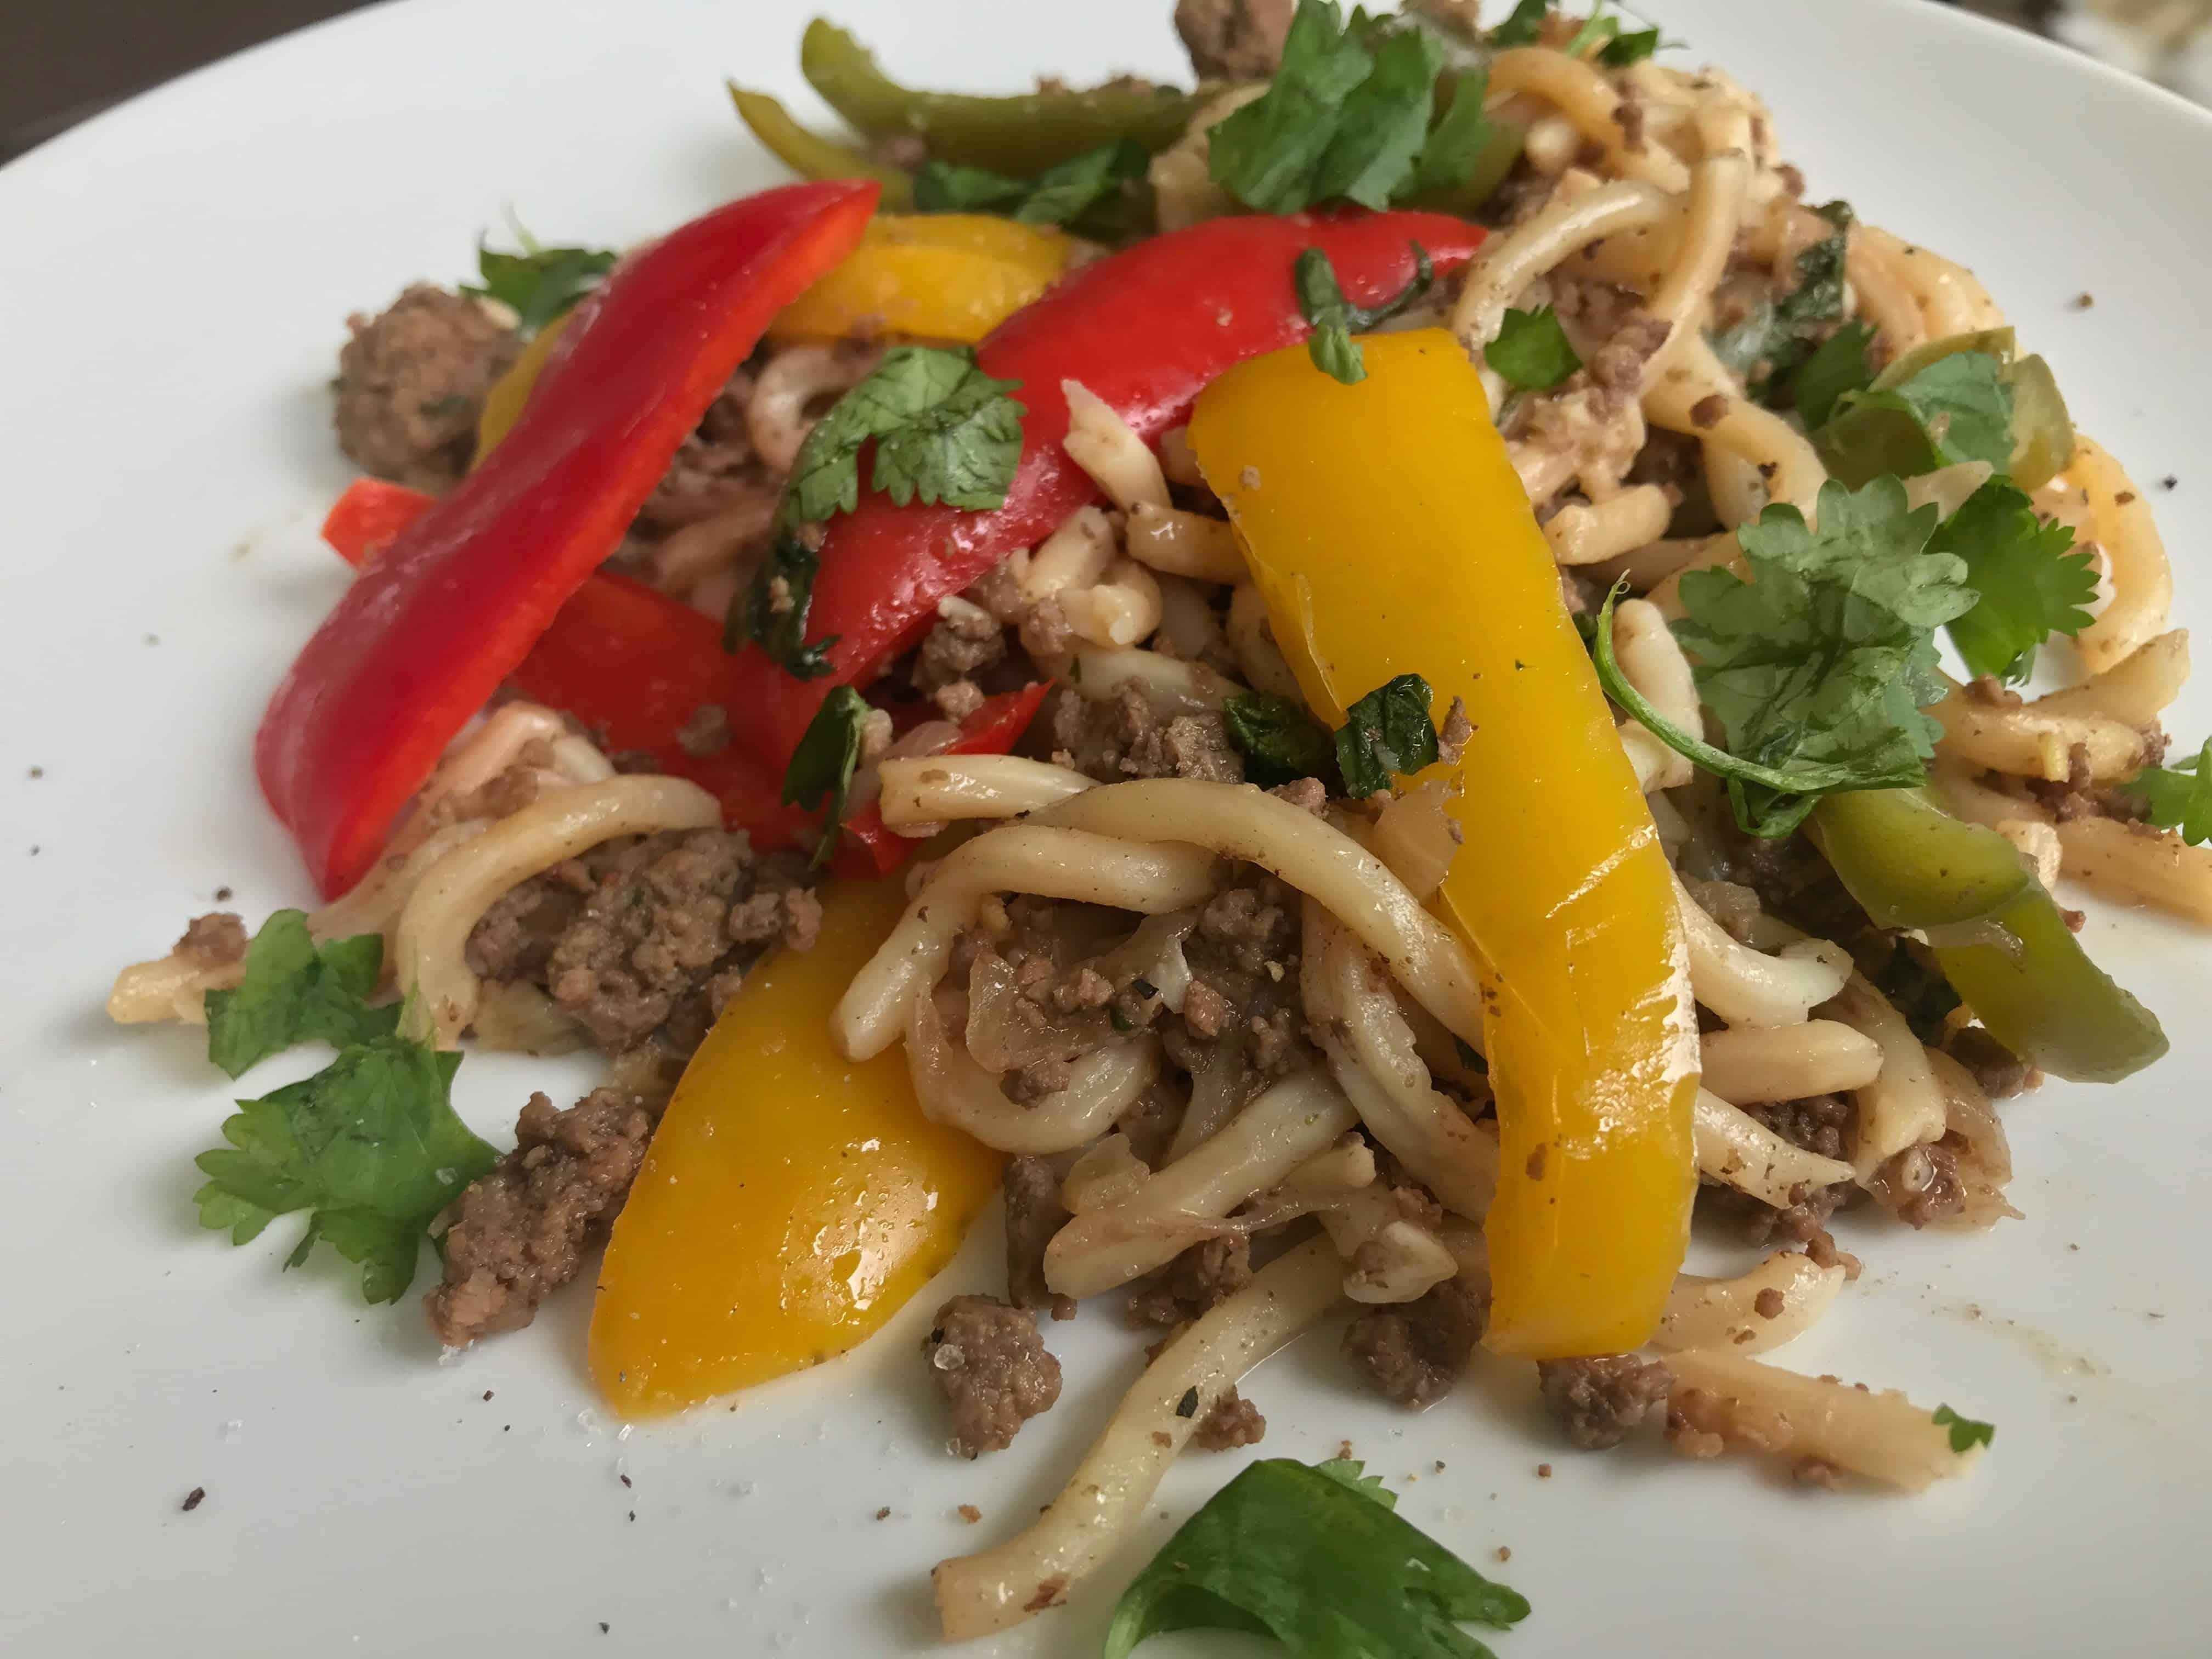 Beef Noodle Stir Fry An Easy Beef And Noodles Recipe The Dinner Daily,Grout Removal Attachment